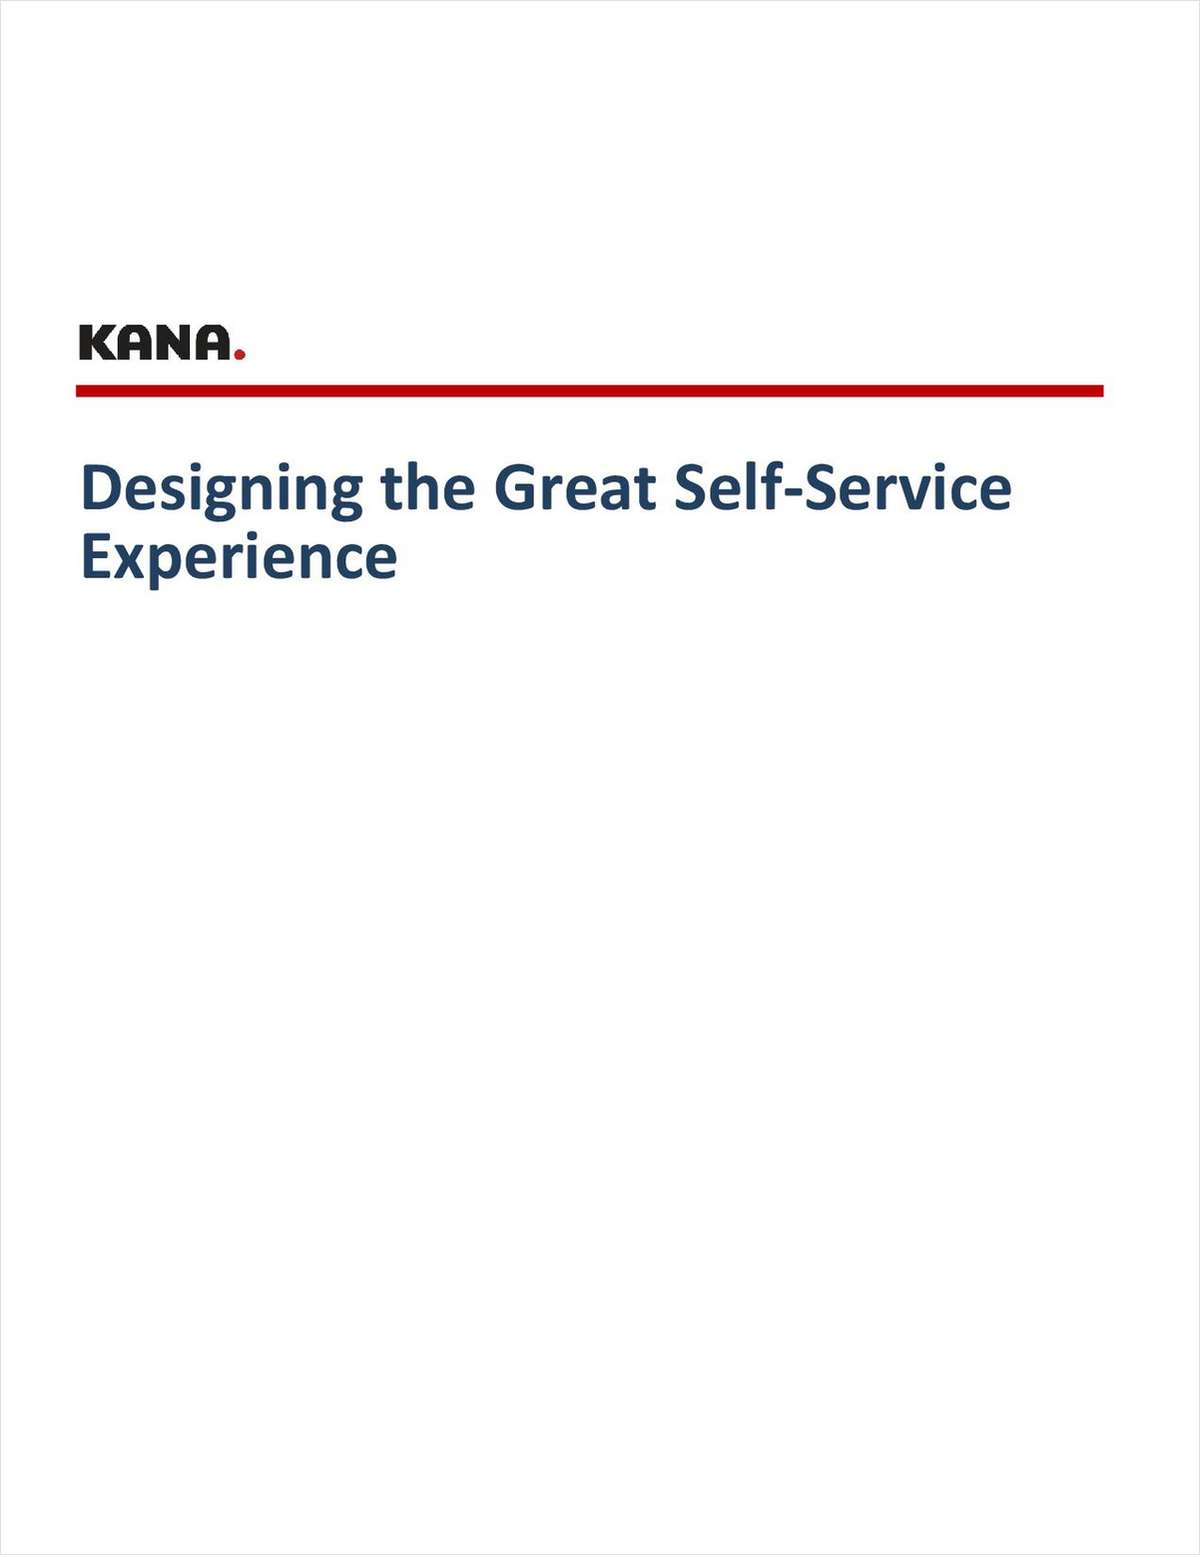 Designing the Great Web Self-Service Experience